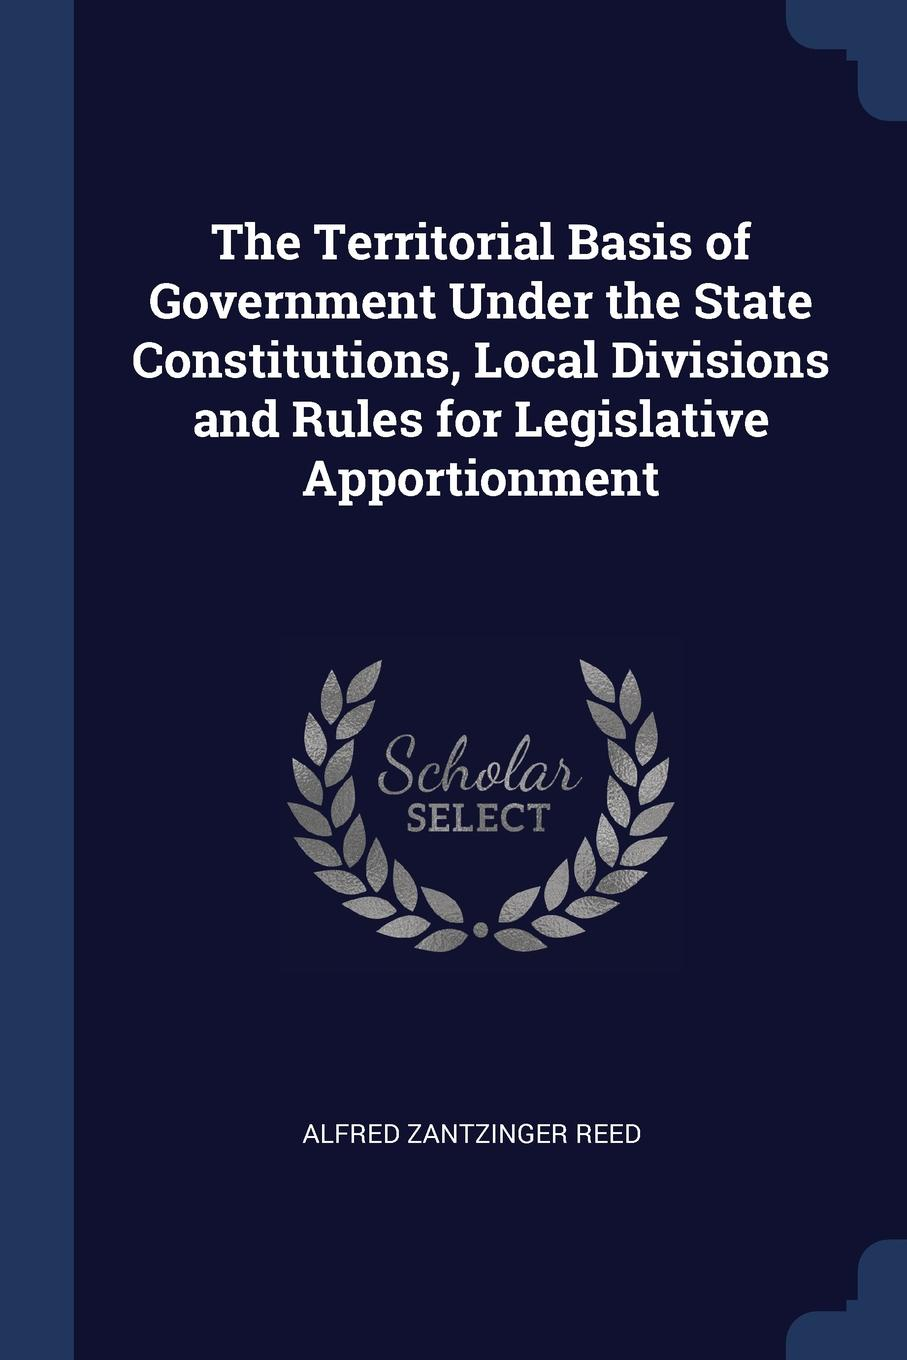 Alfred Zantzinger Reed The Territorial Basis of Government Under the State Constitutions, Local Divisions and Rules for Legislative Apportionment